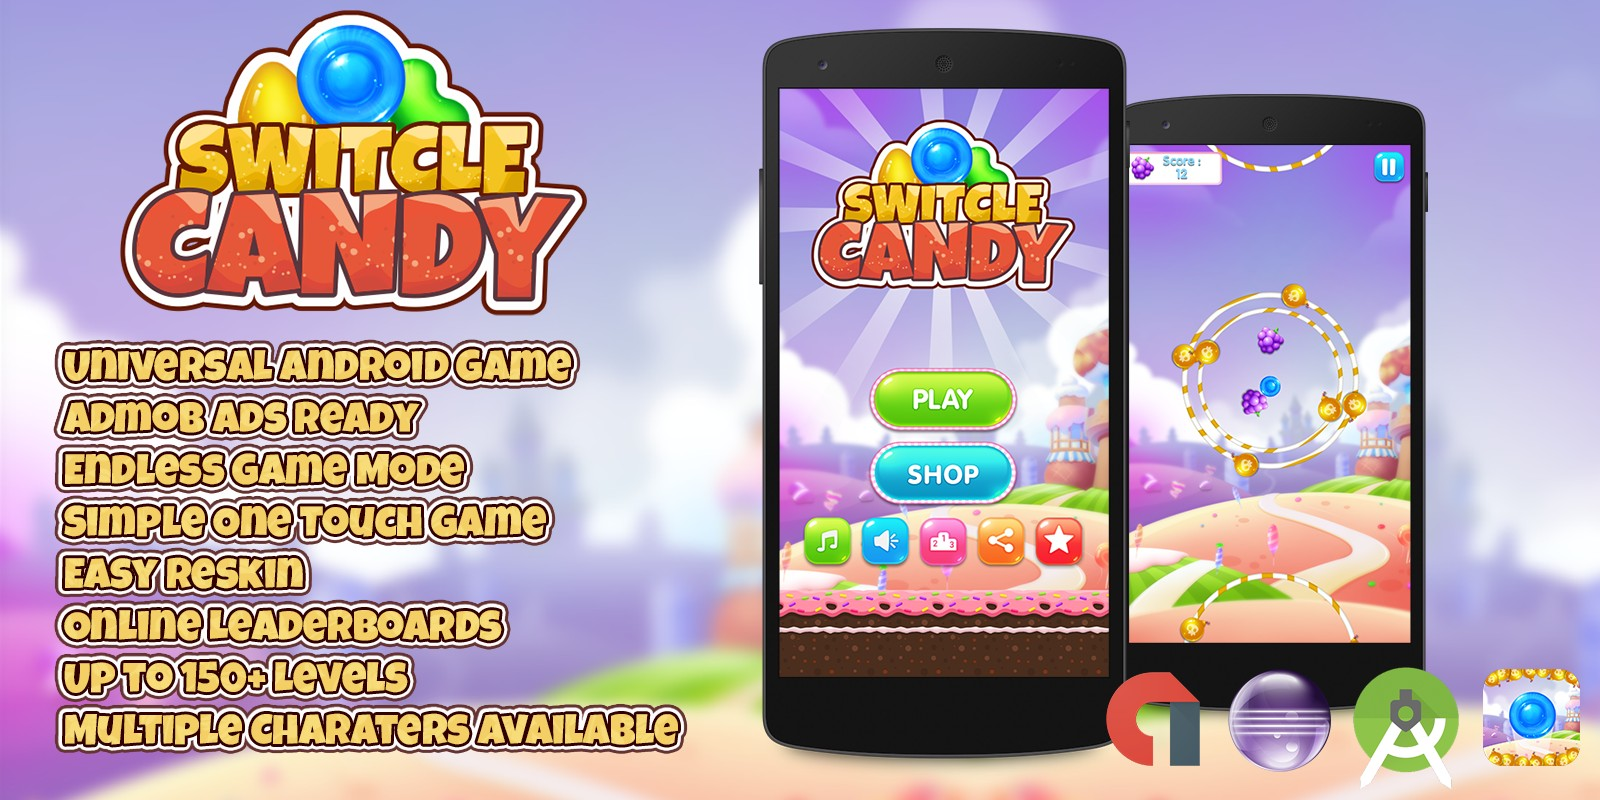 Switcle Candy - Android Game Template